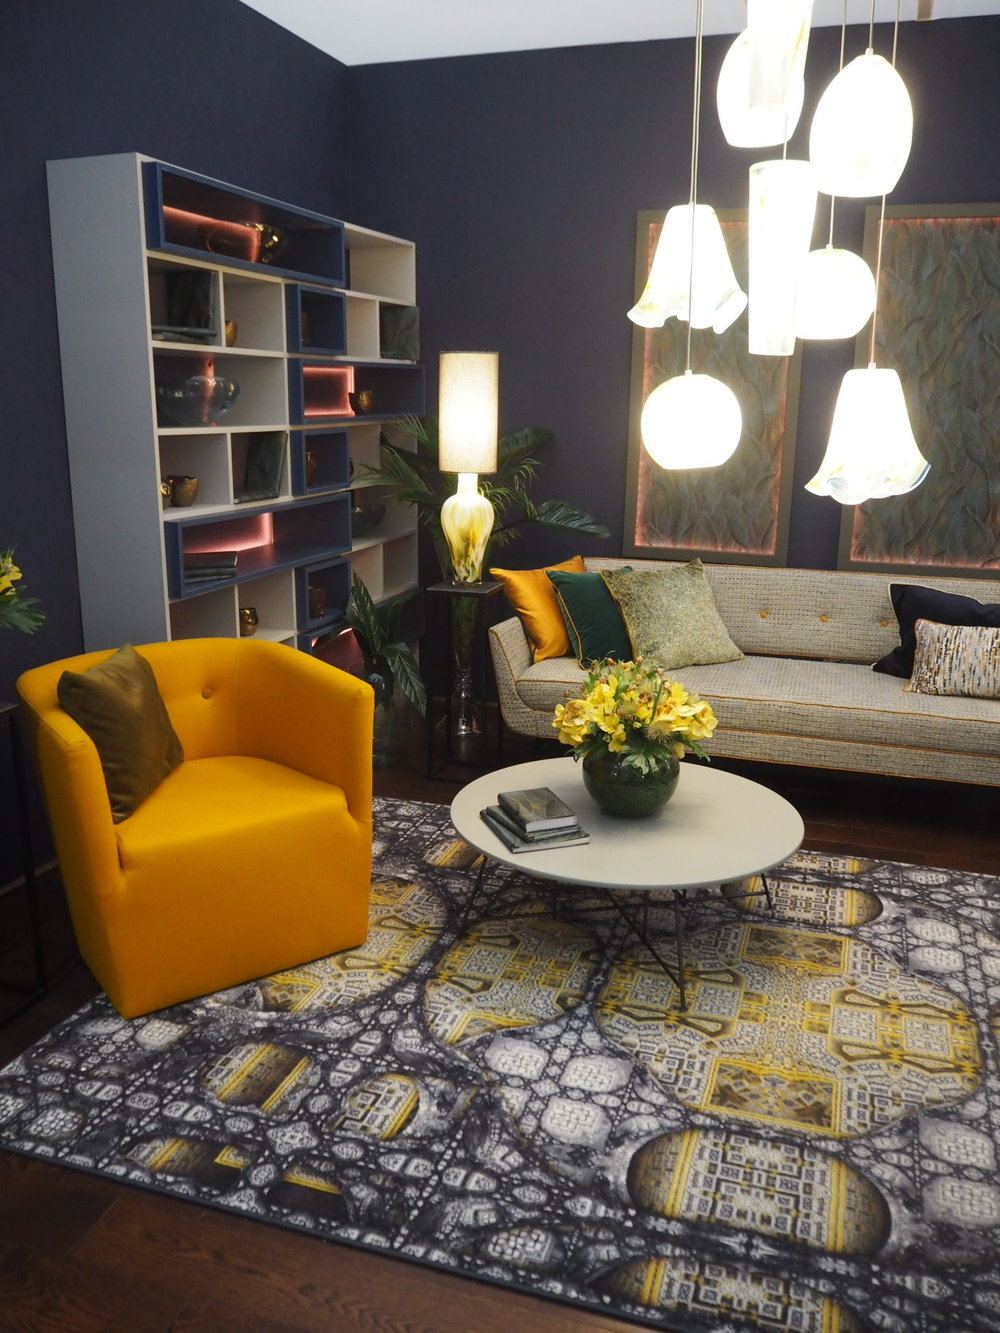 Mustard tones, with beautiful orange piping on the sofa